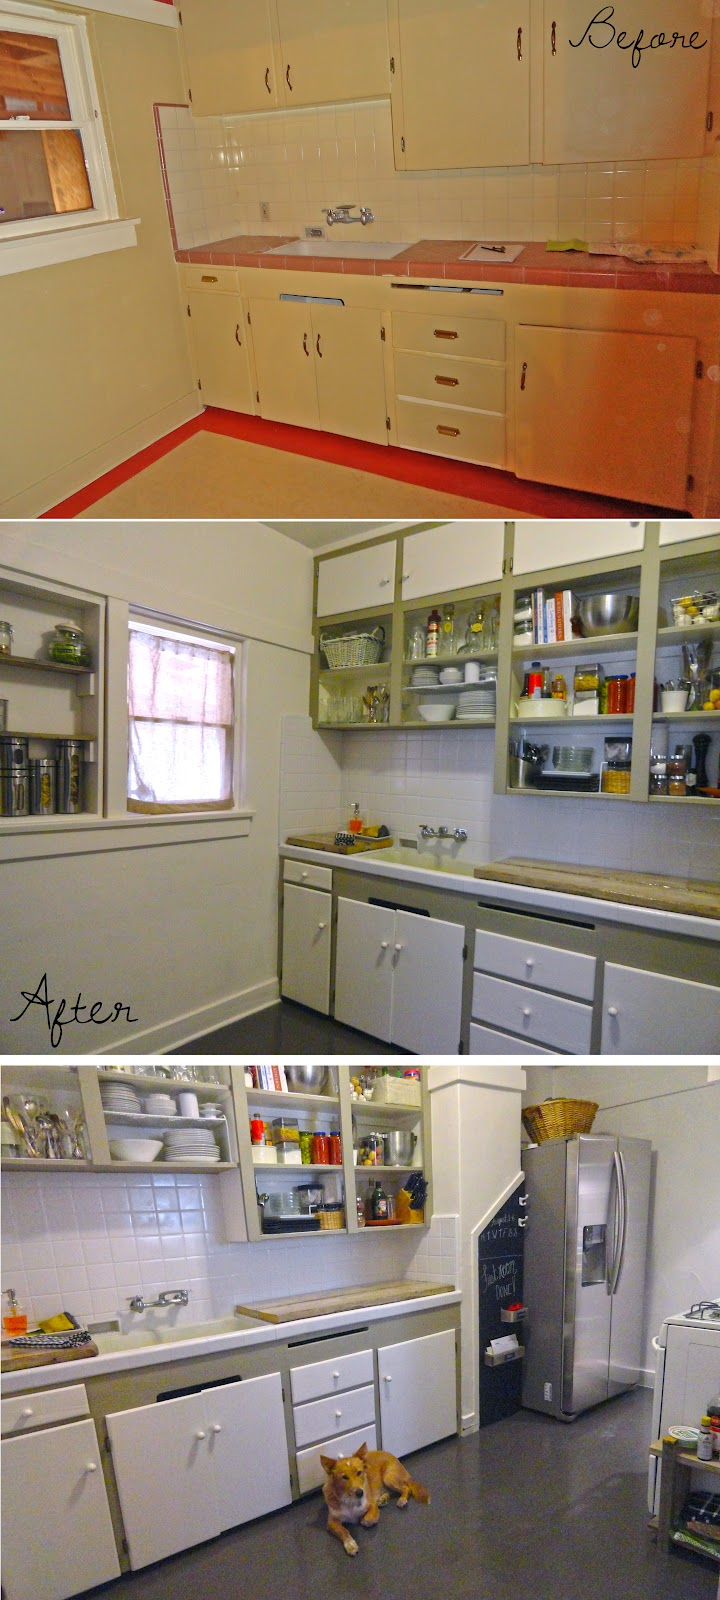 It 39 s on the house kitchen remodel on a dime for Kitchen remodel ideas on a dime